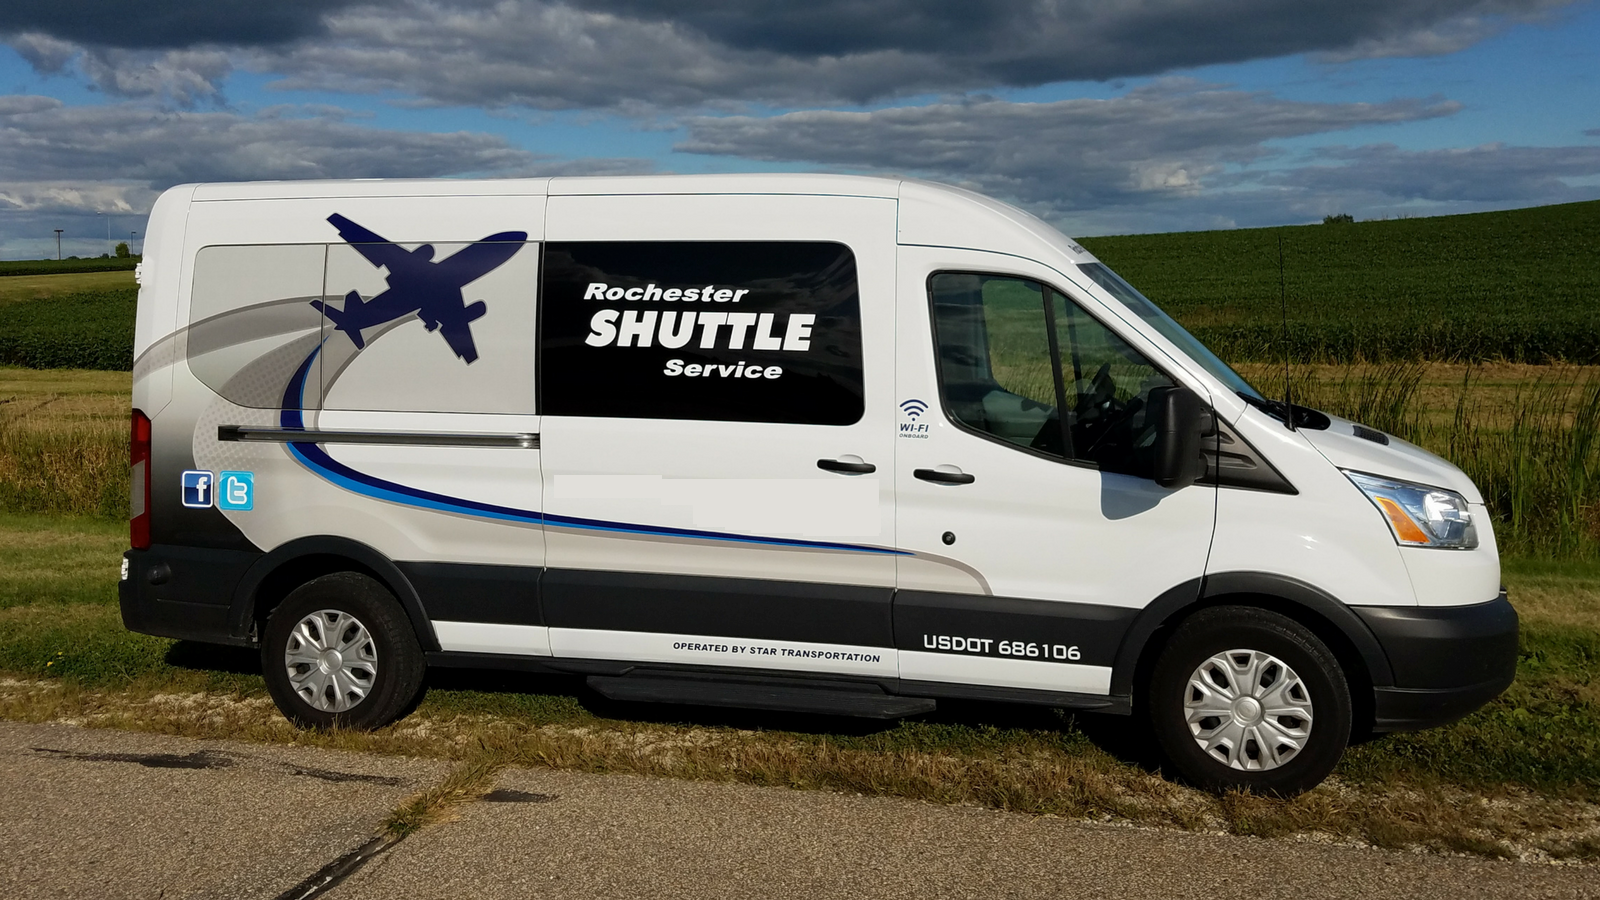 Rochester Shuttle Service vehicle 1